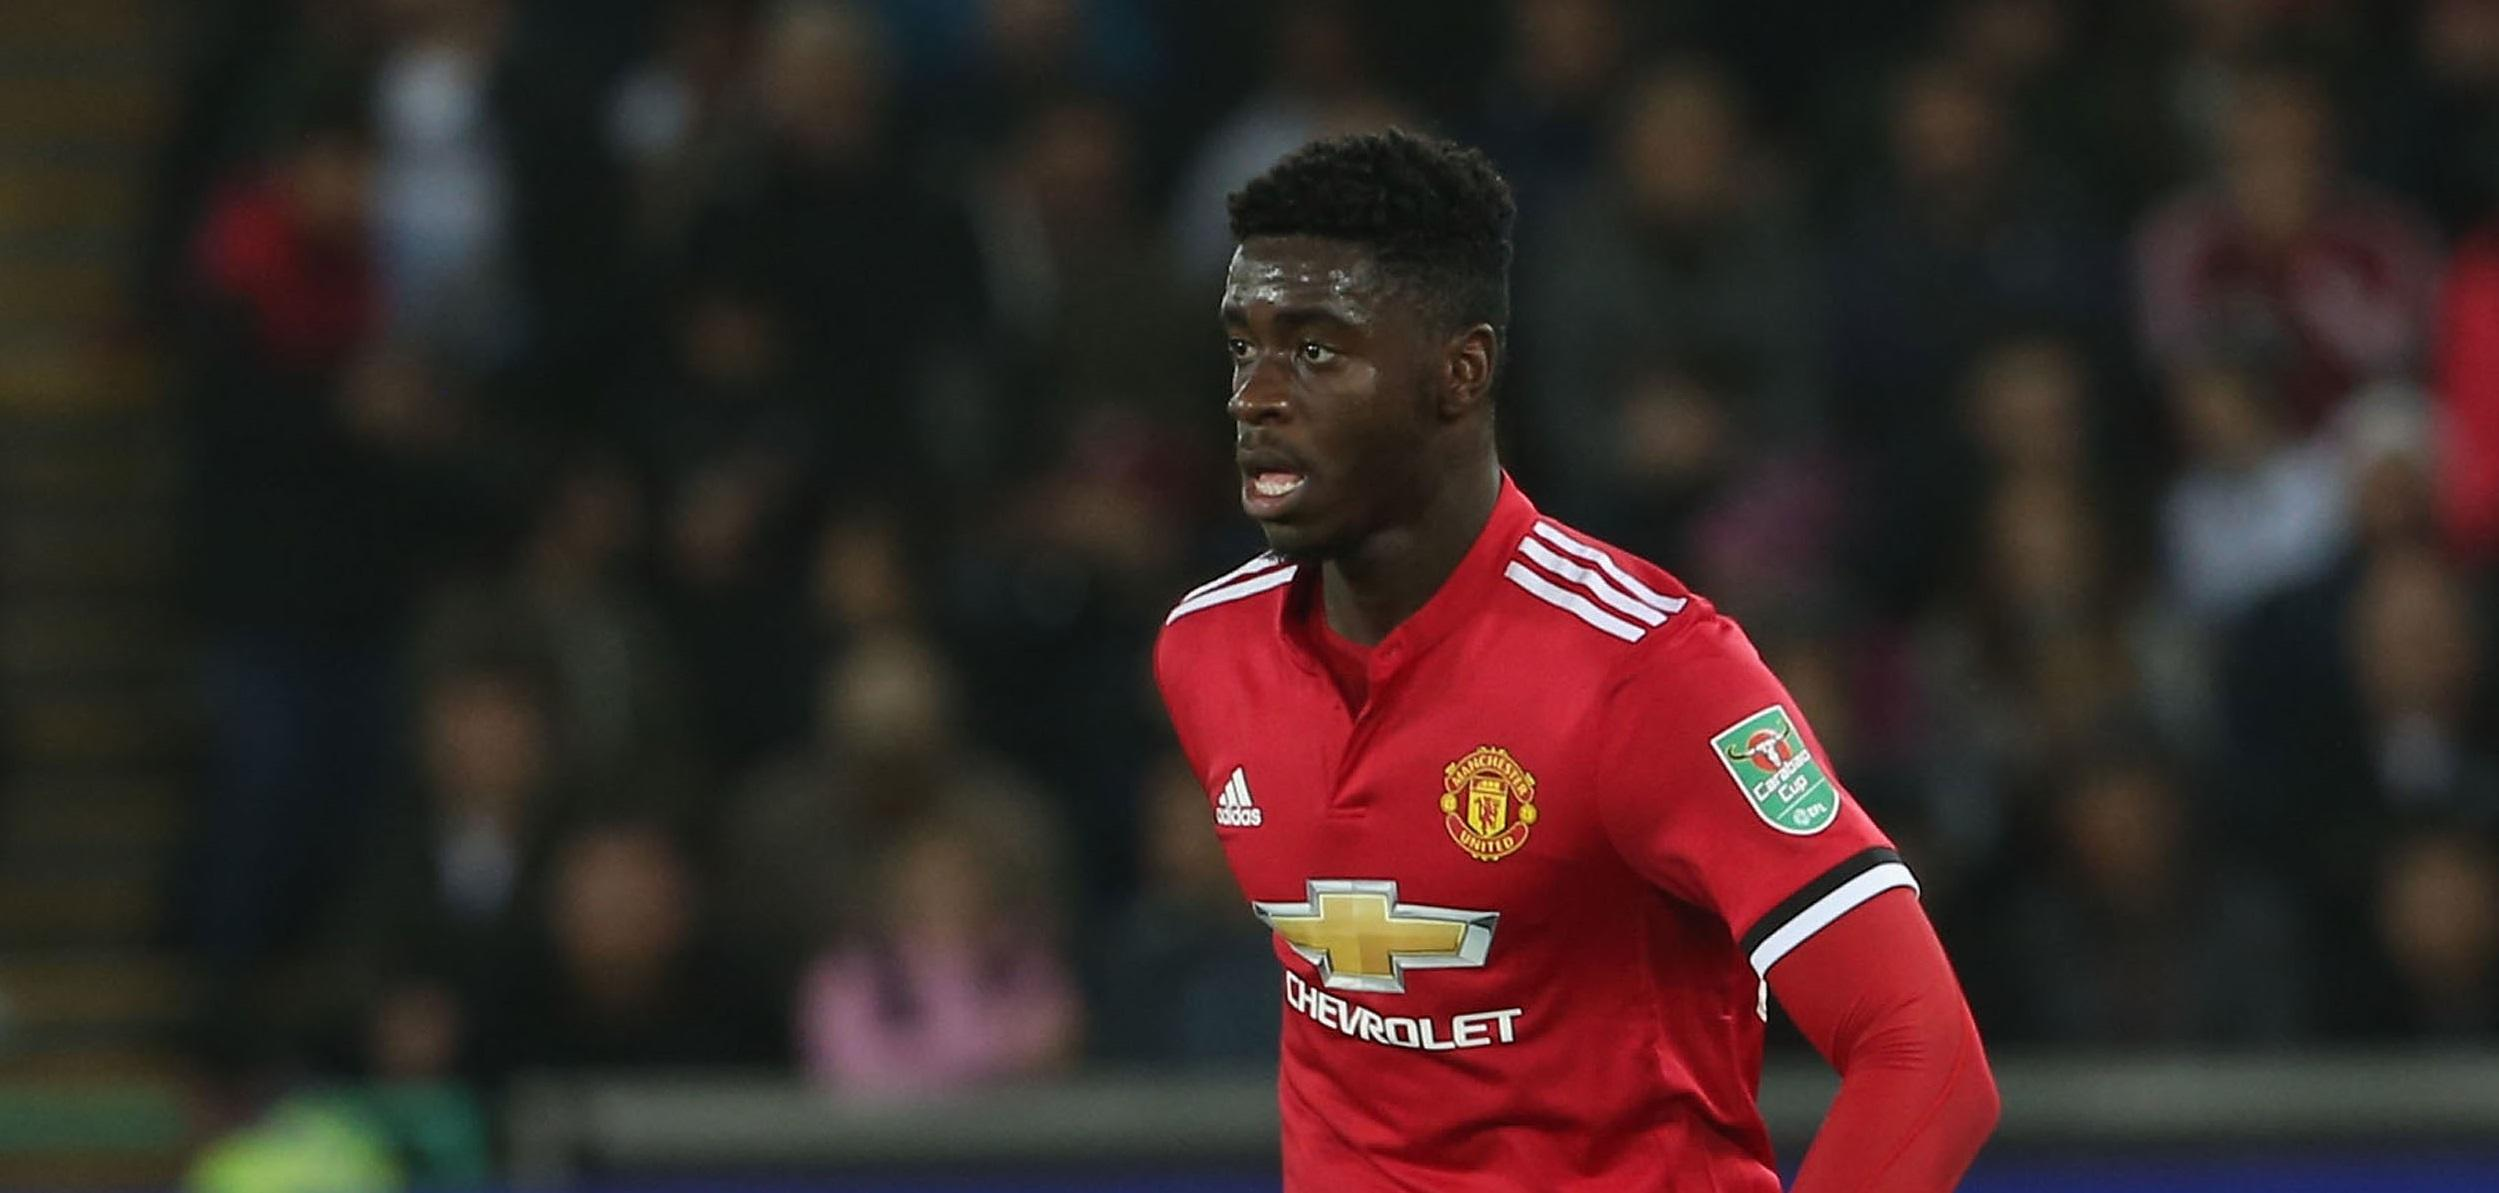 Five reasons to be excited about Axel Tuanzebe